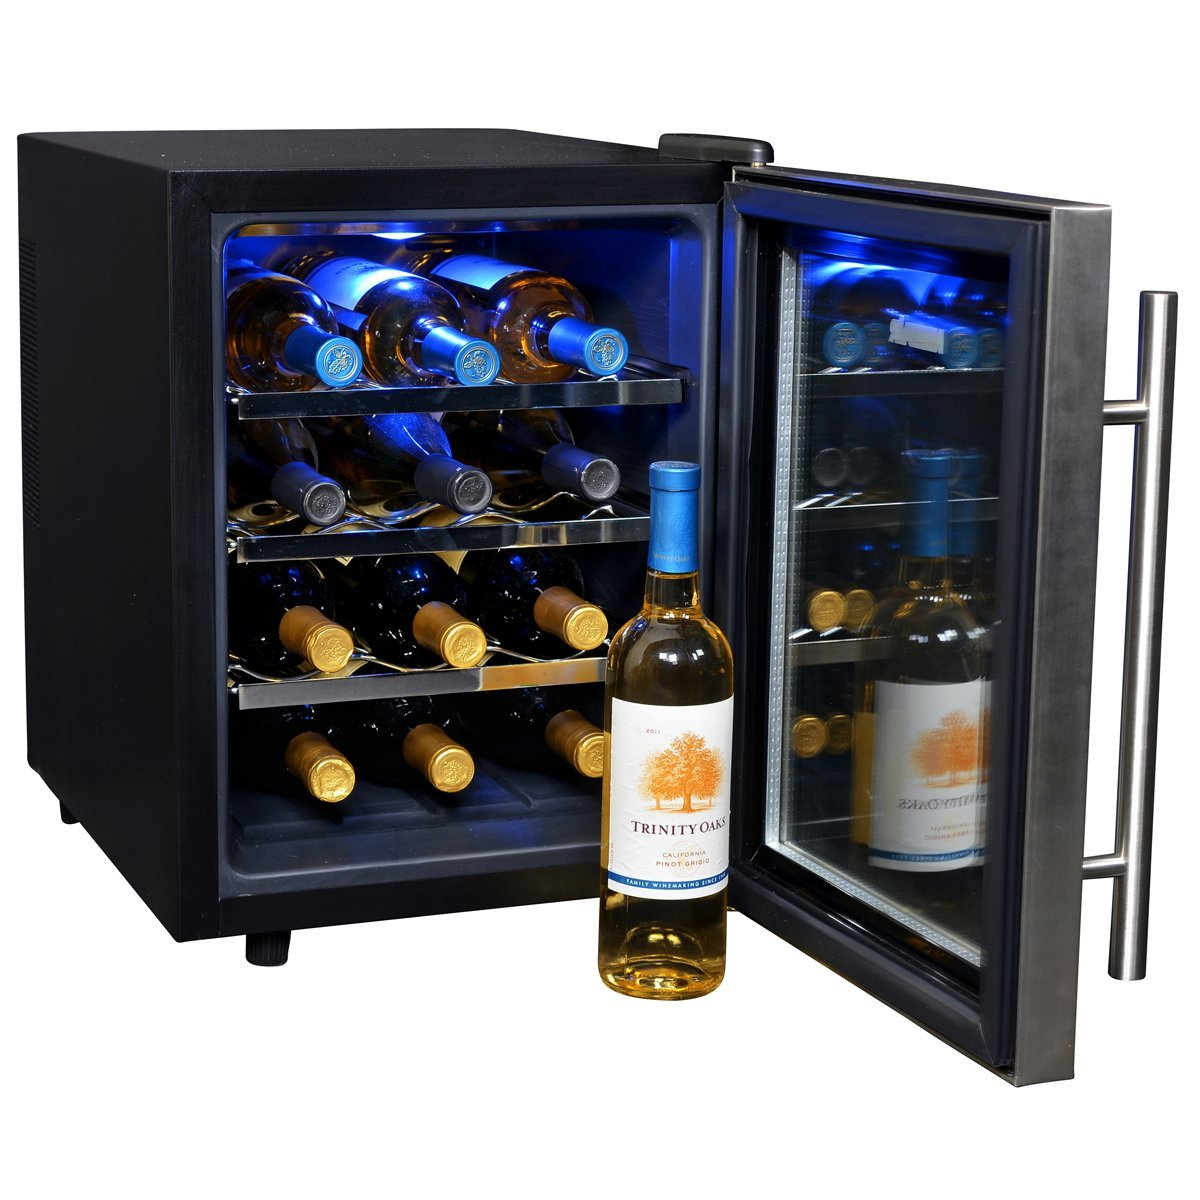 Best NewAir Wine Cooler